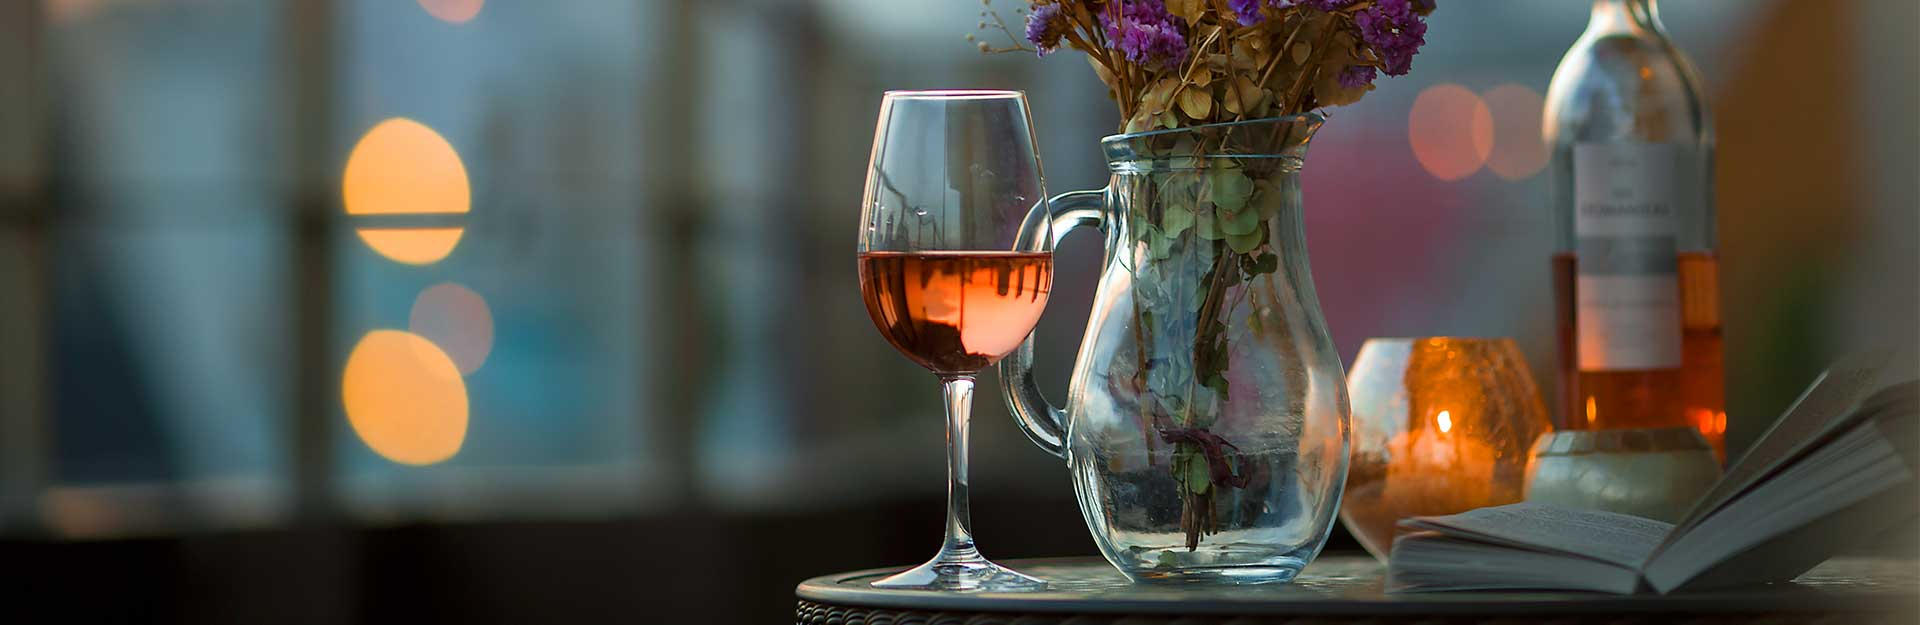 a glass of wine on a table